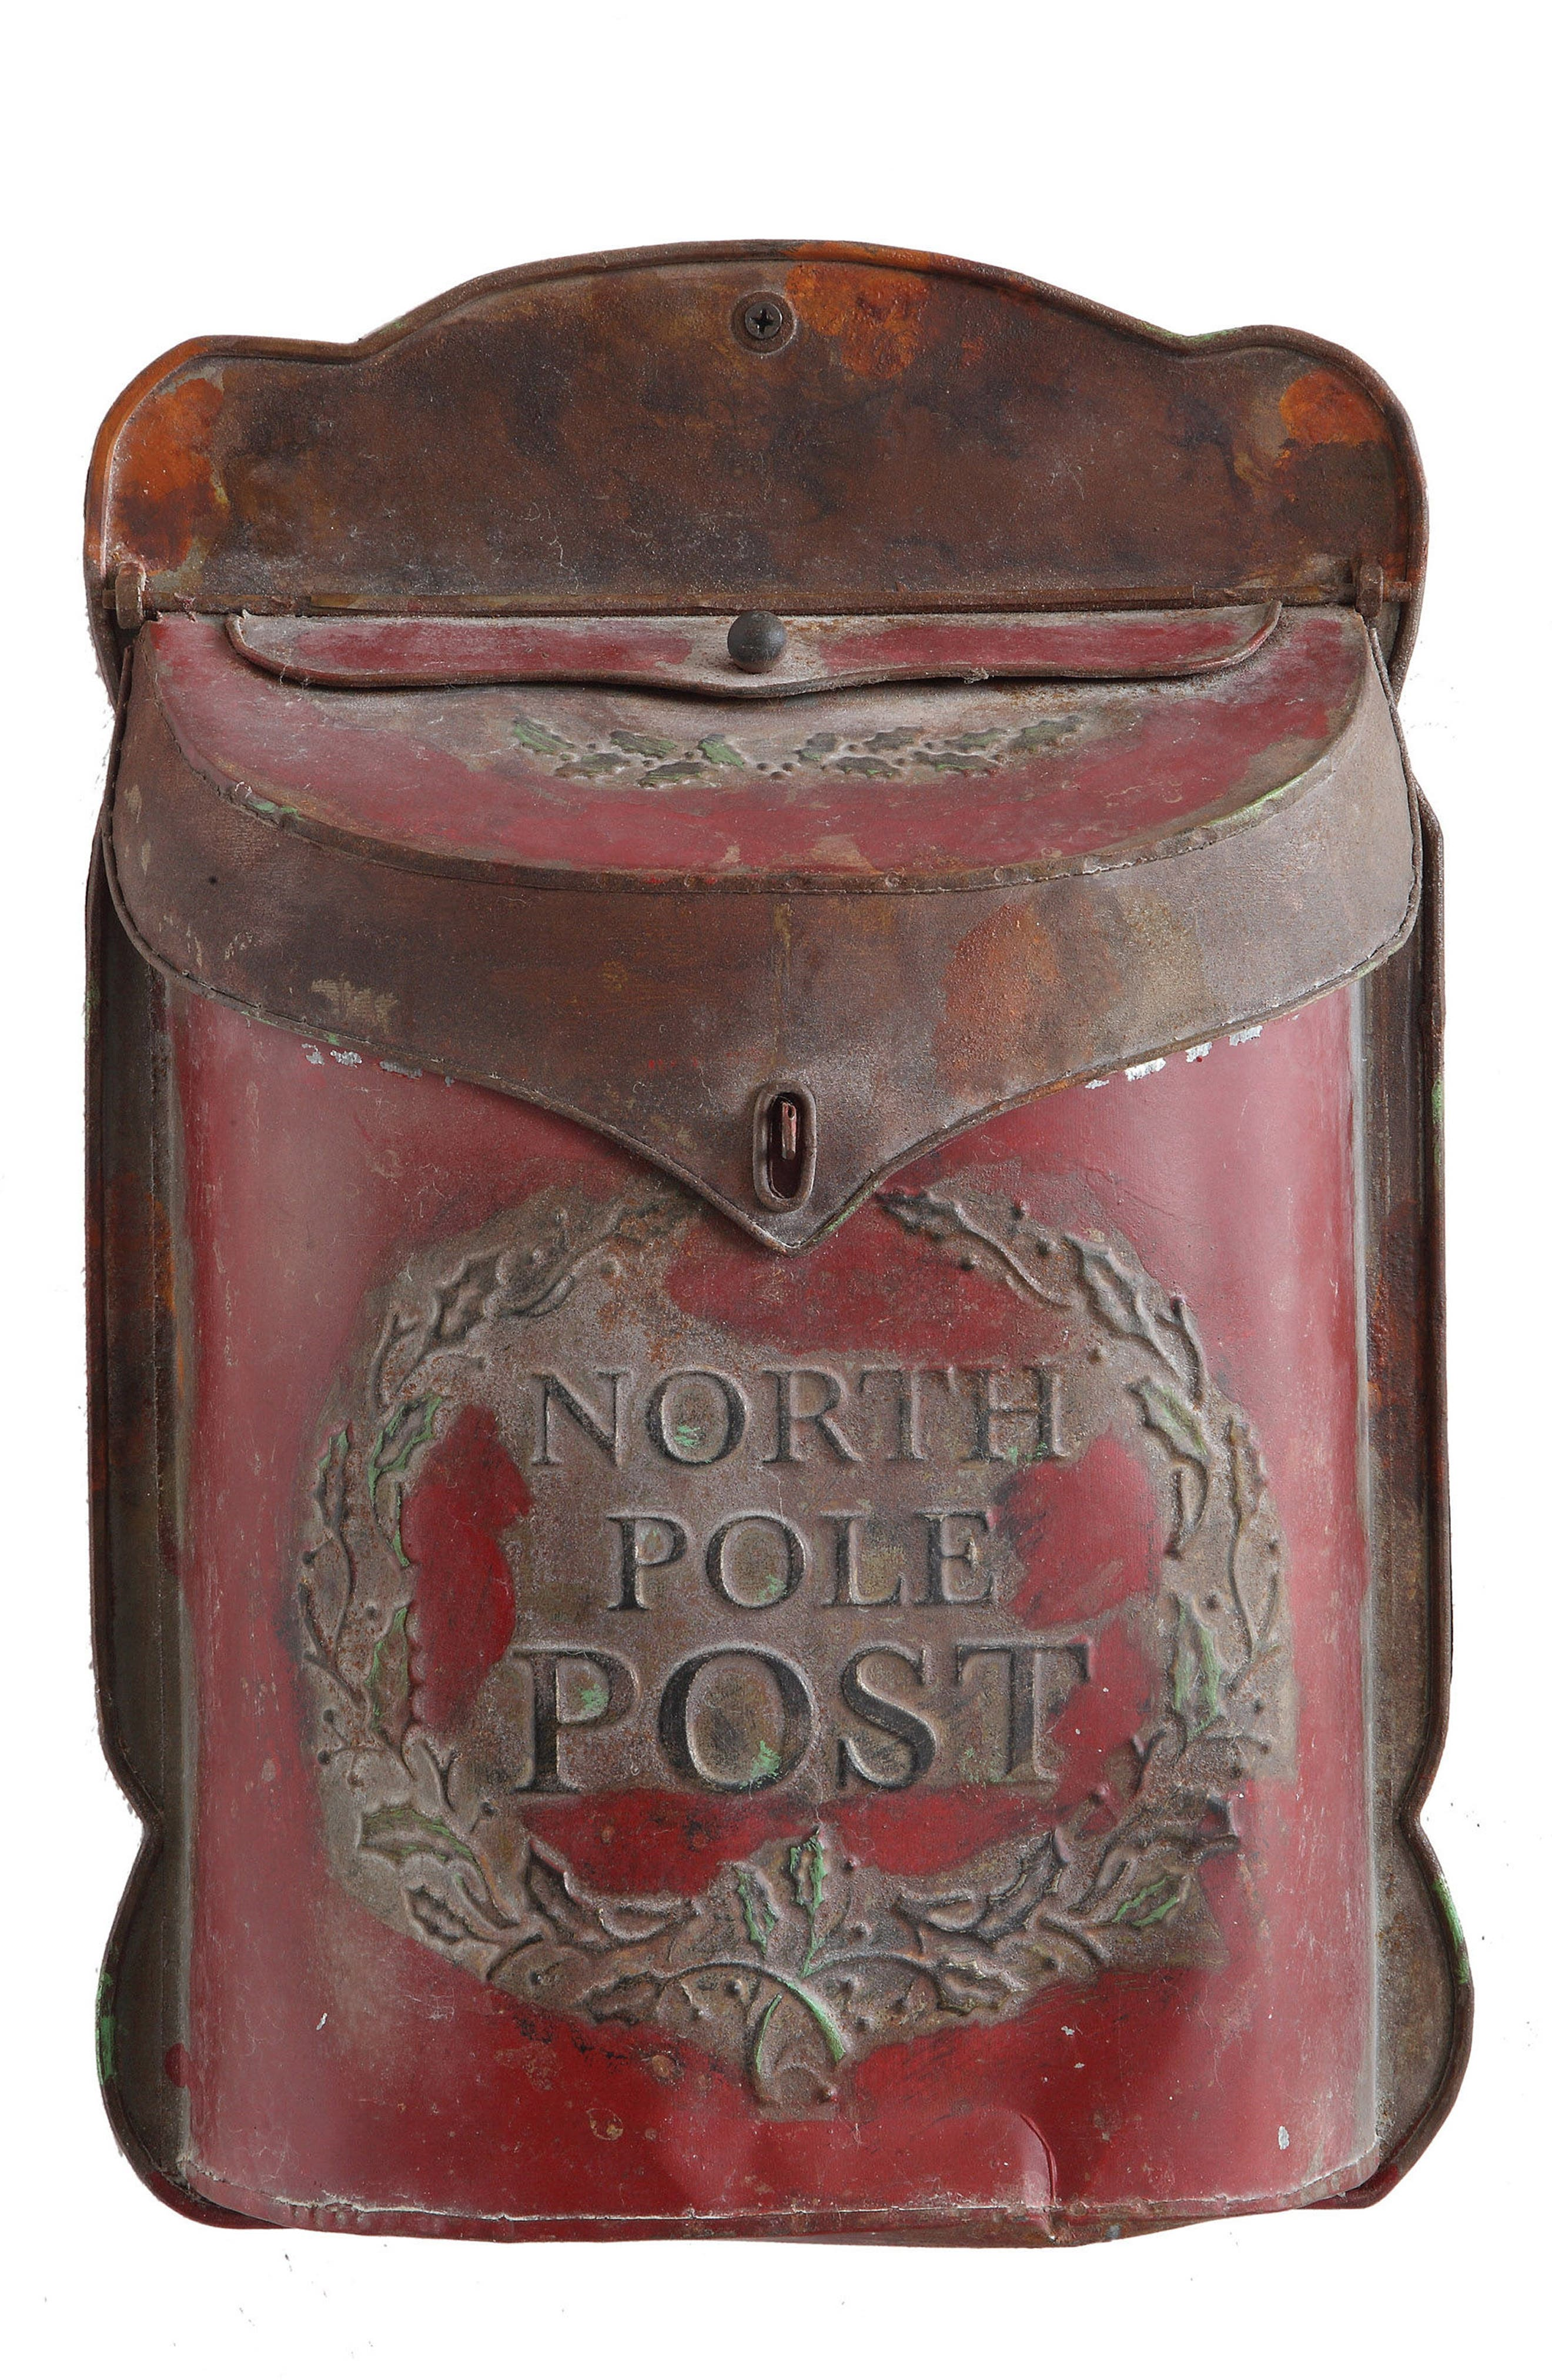 Alternate Image 1 Selected - Creative Co-Op North Pole Post Box